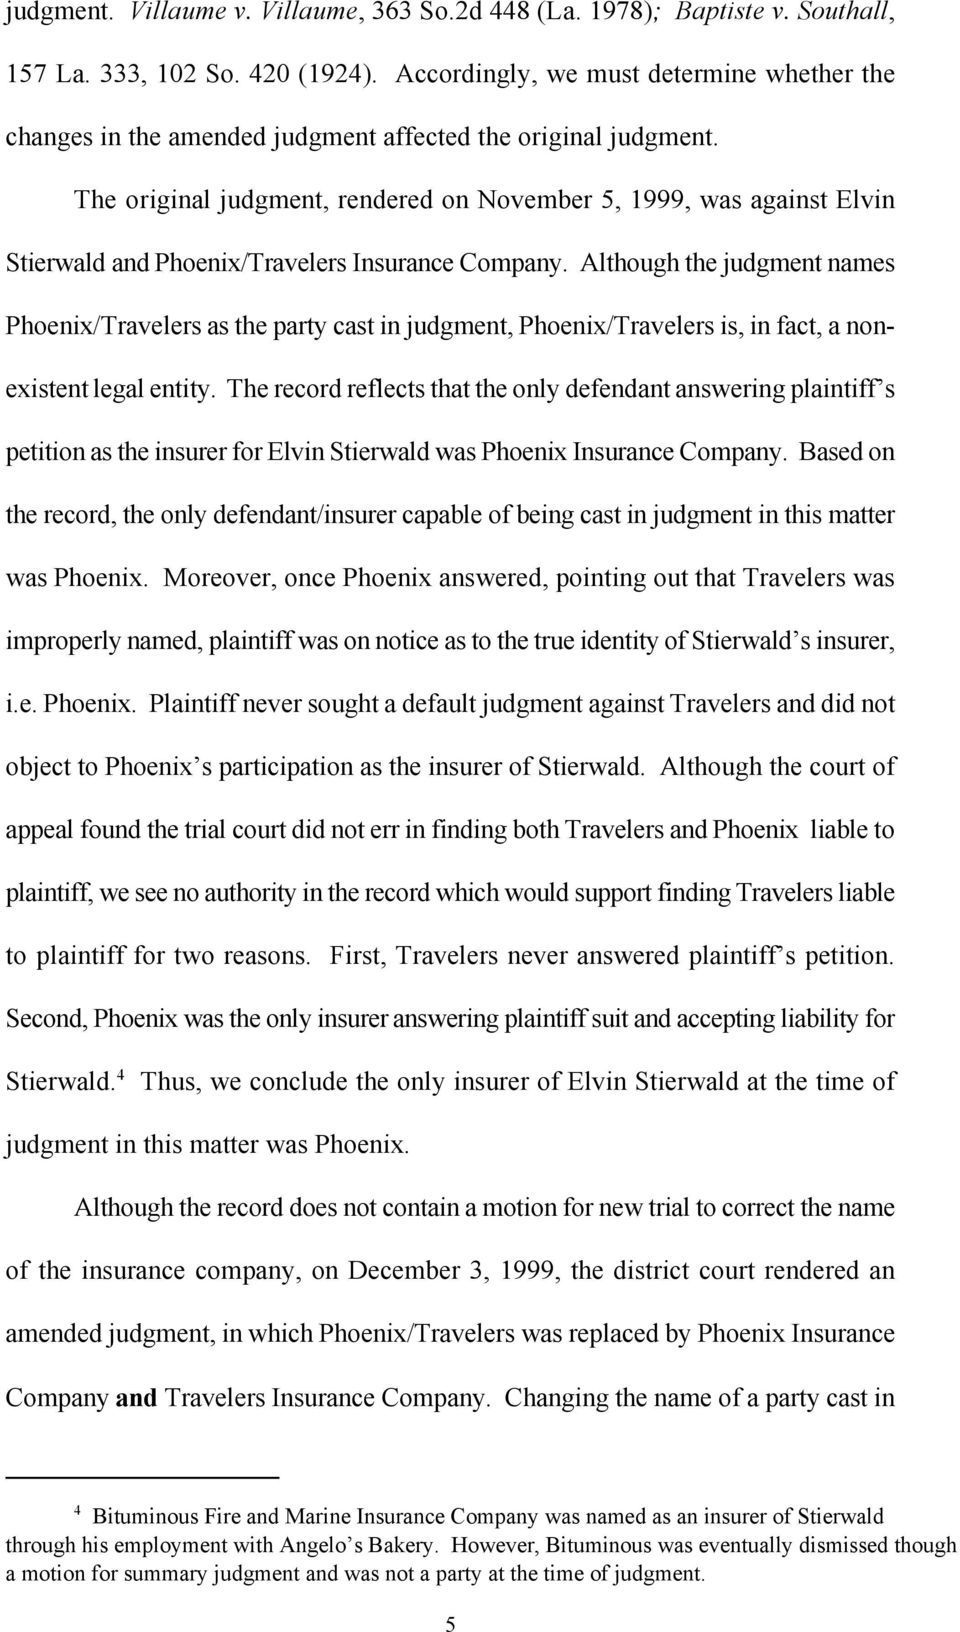 The original judgment, rendered on November 5, 1999, was against Elvin Stierwald and Phoenix/Travelers Insurance Company.